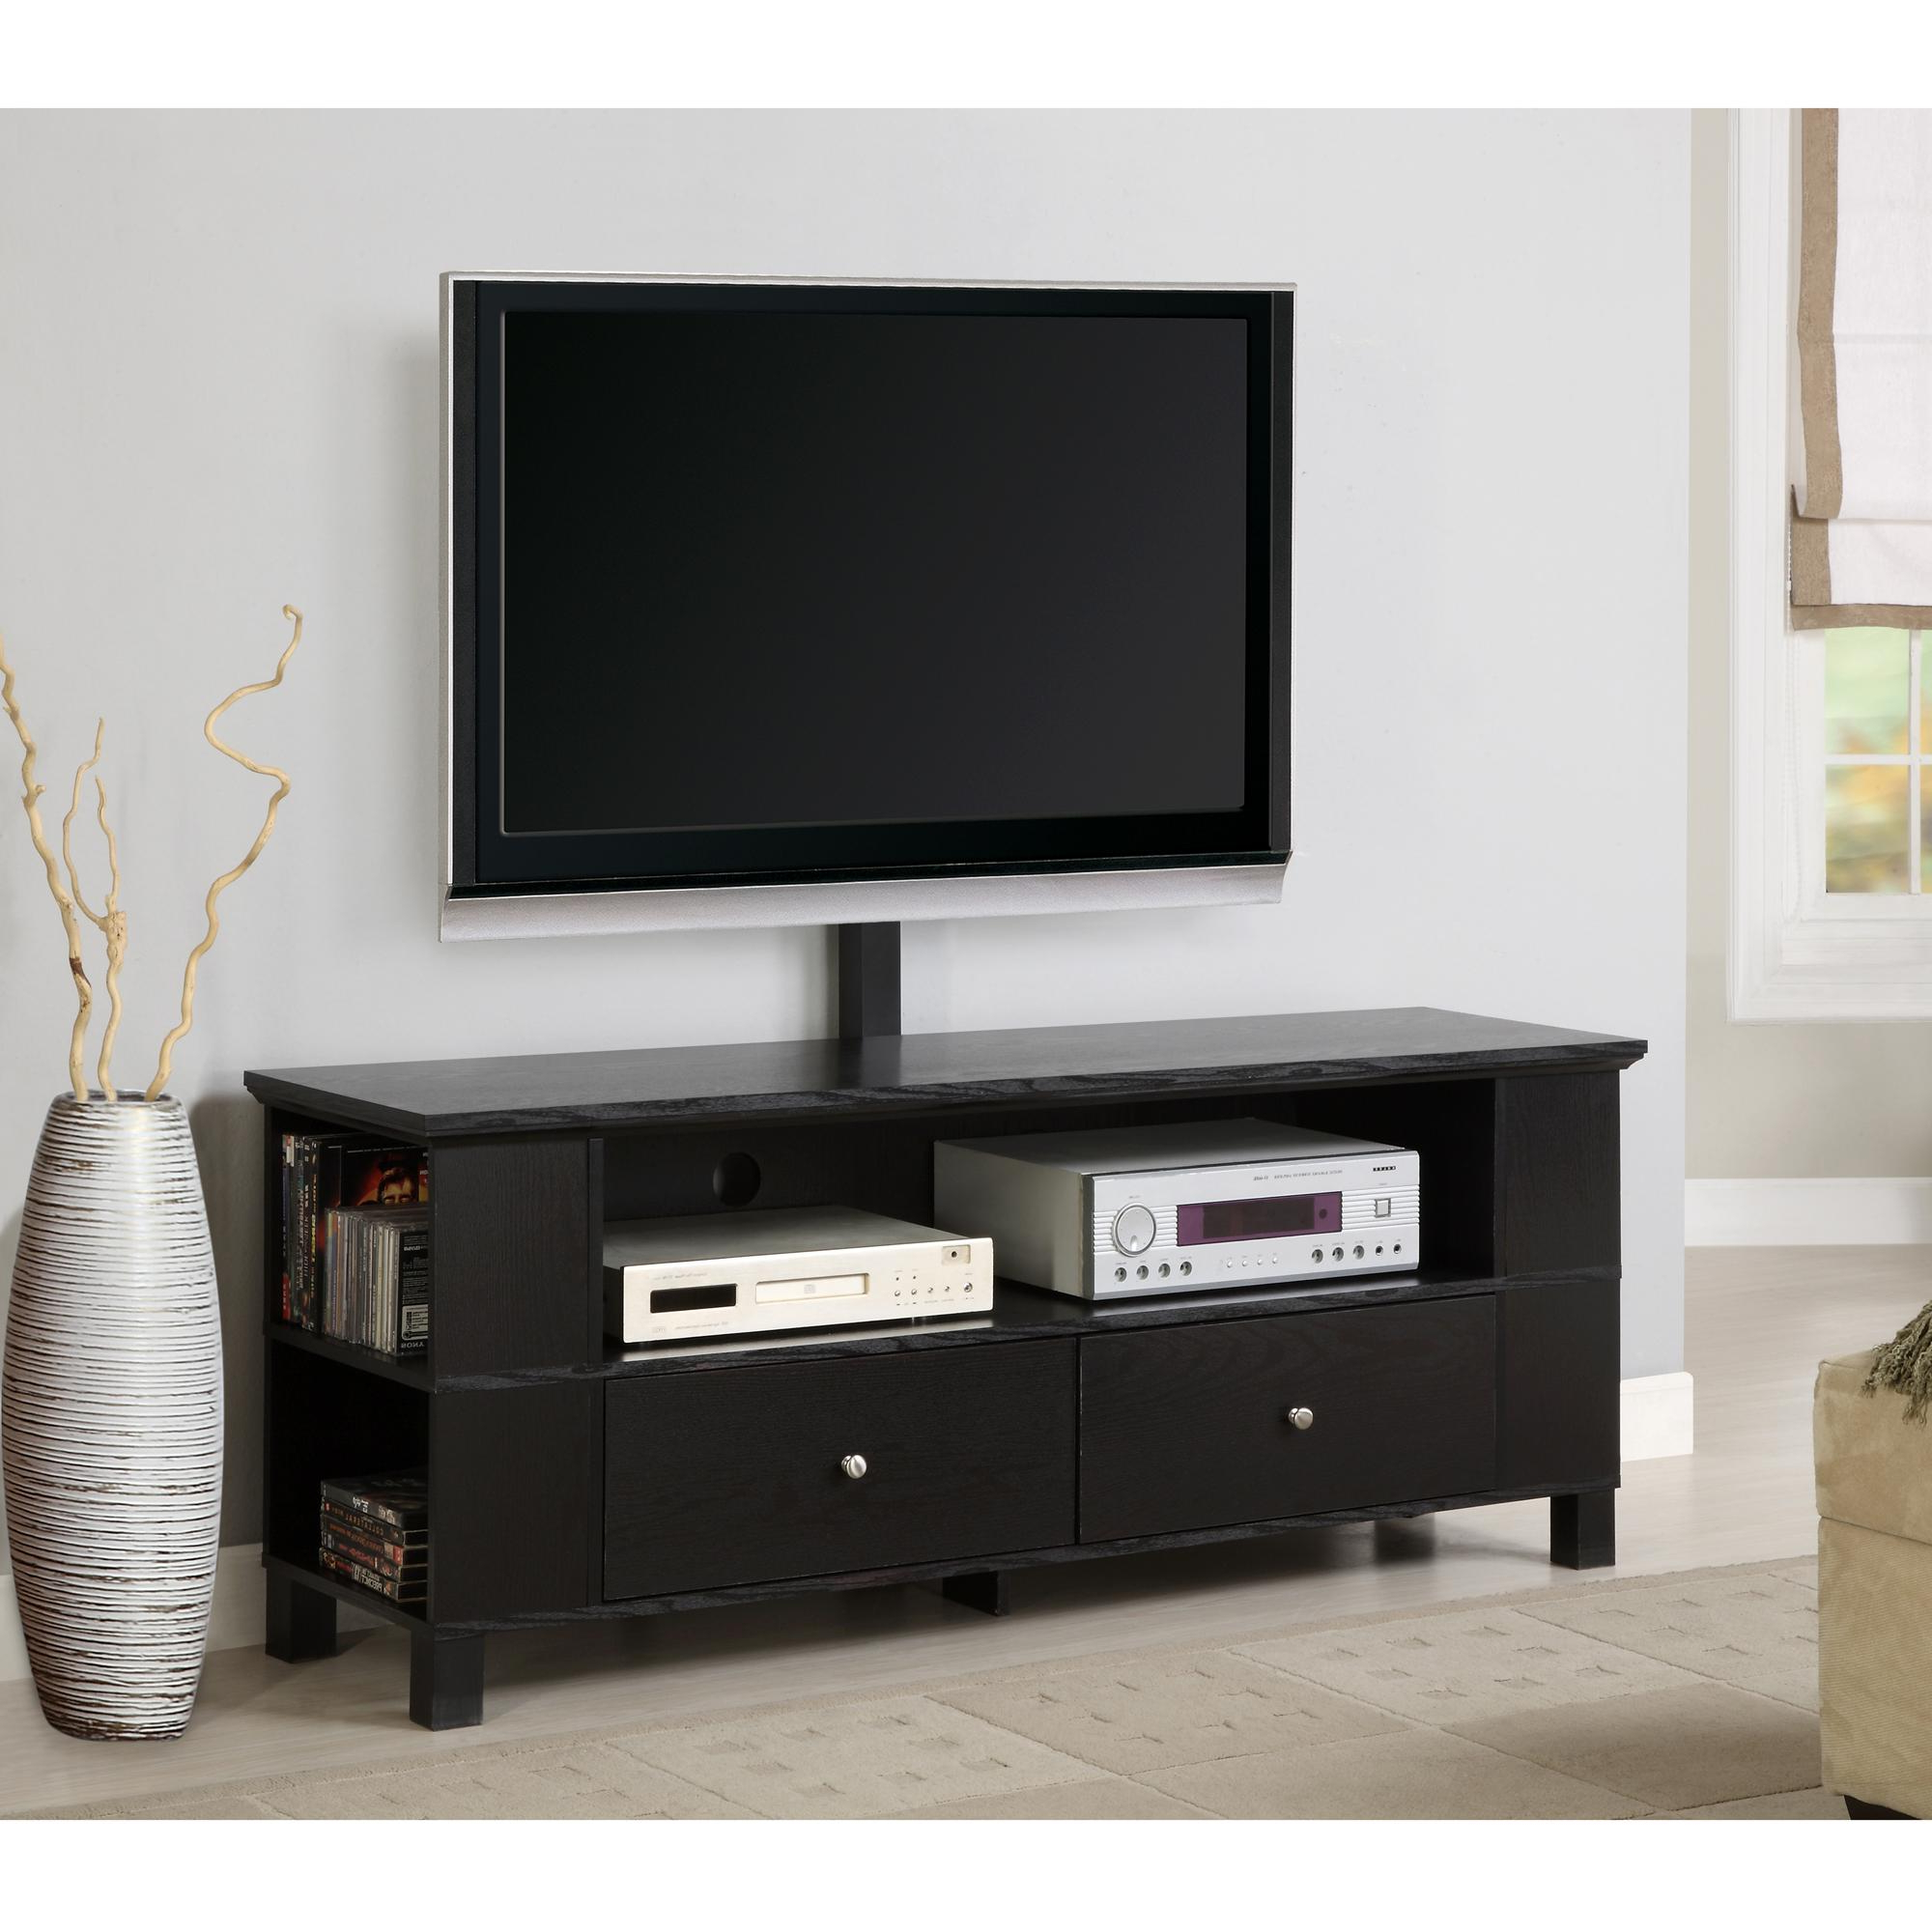 """Millen Tv Stands For Tvs Up To 60"""" With Regard To Current Amazon – Walker Edison 60"""" Class Black Wood Tv Stand (View 2 of 25)"""